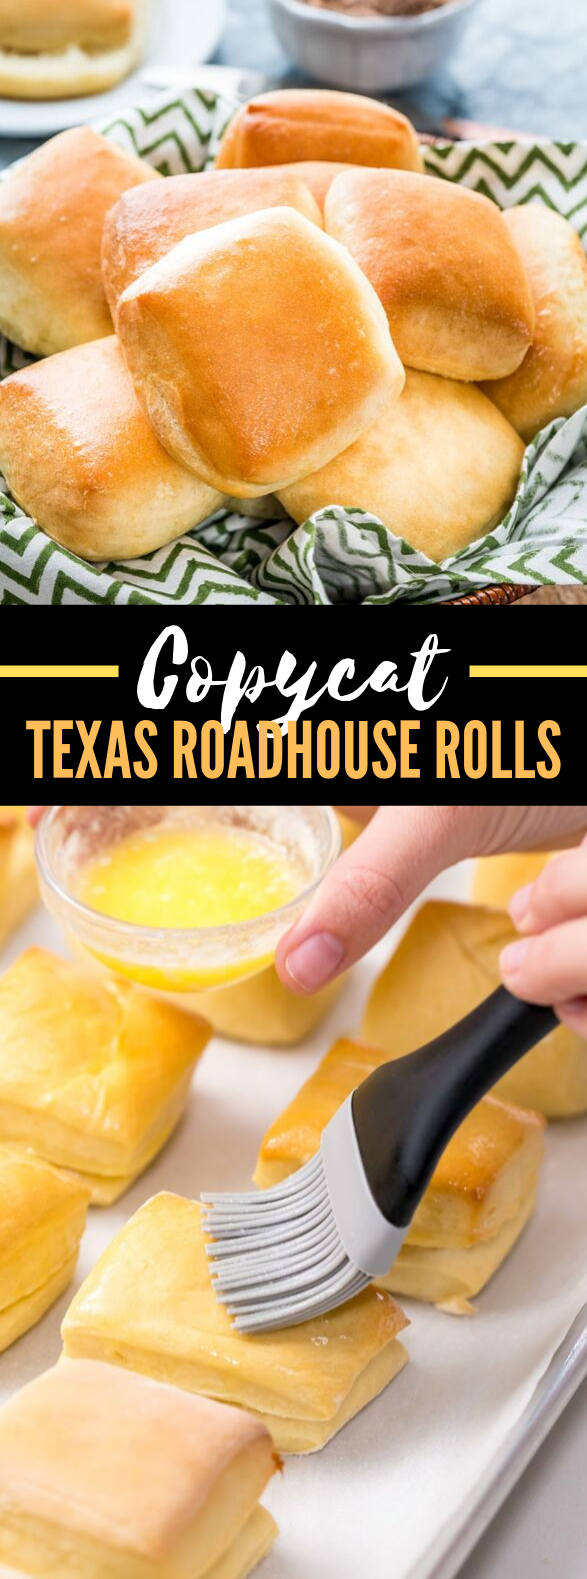 A COPYCAT RECIPE – TEXAS ROADHOUSE ROLLS #dinner #appetizers